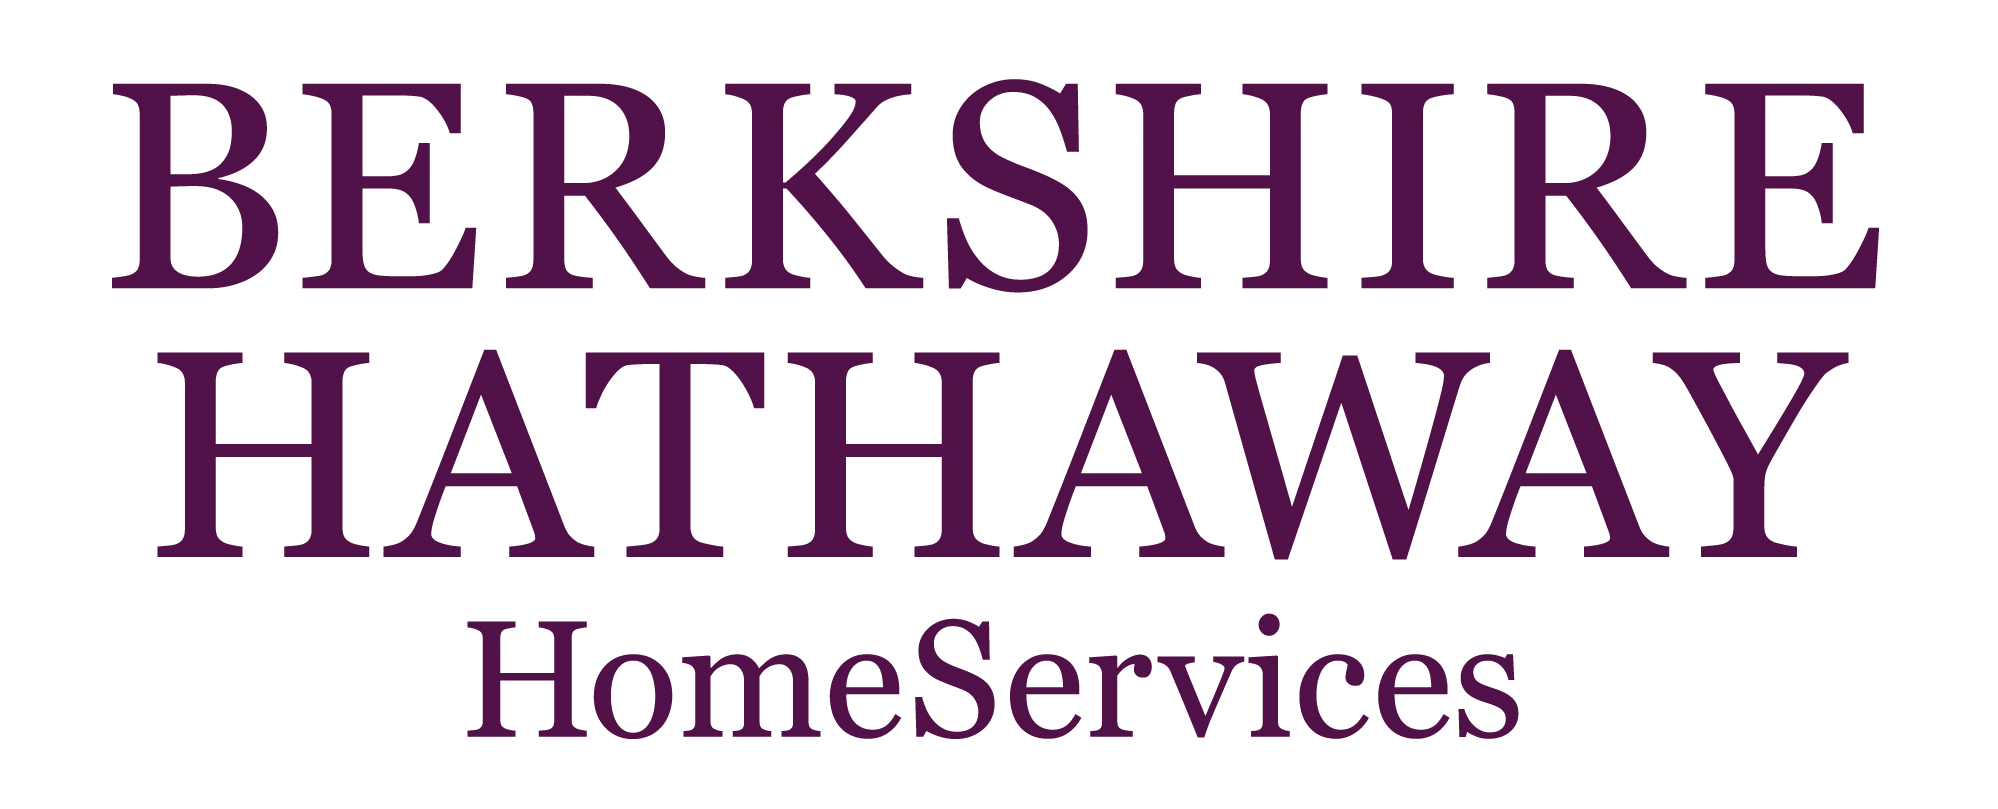 Berkshire Hathaway Png Free Berkshire Hathaway Png Transparent Images 122297 Pngio